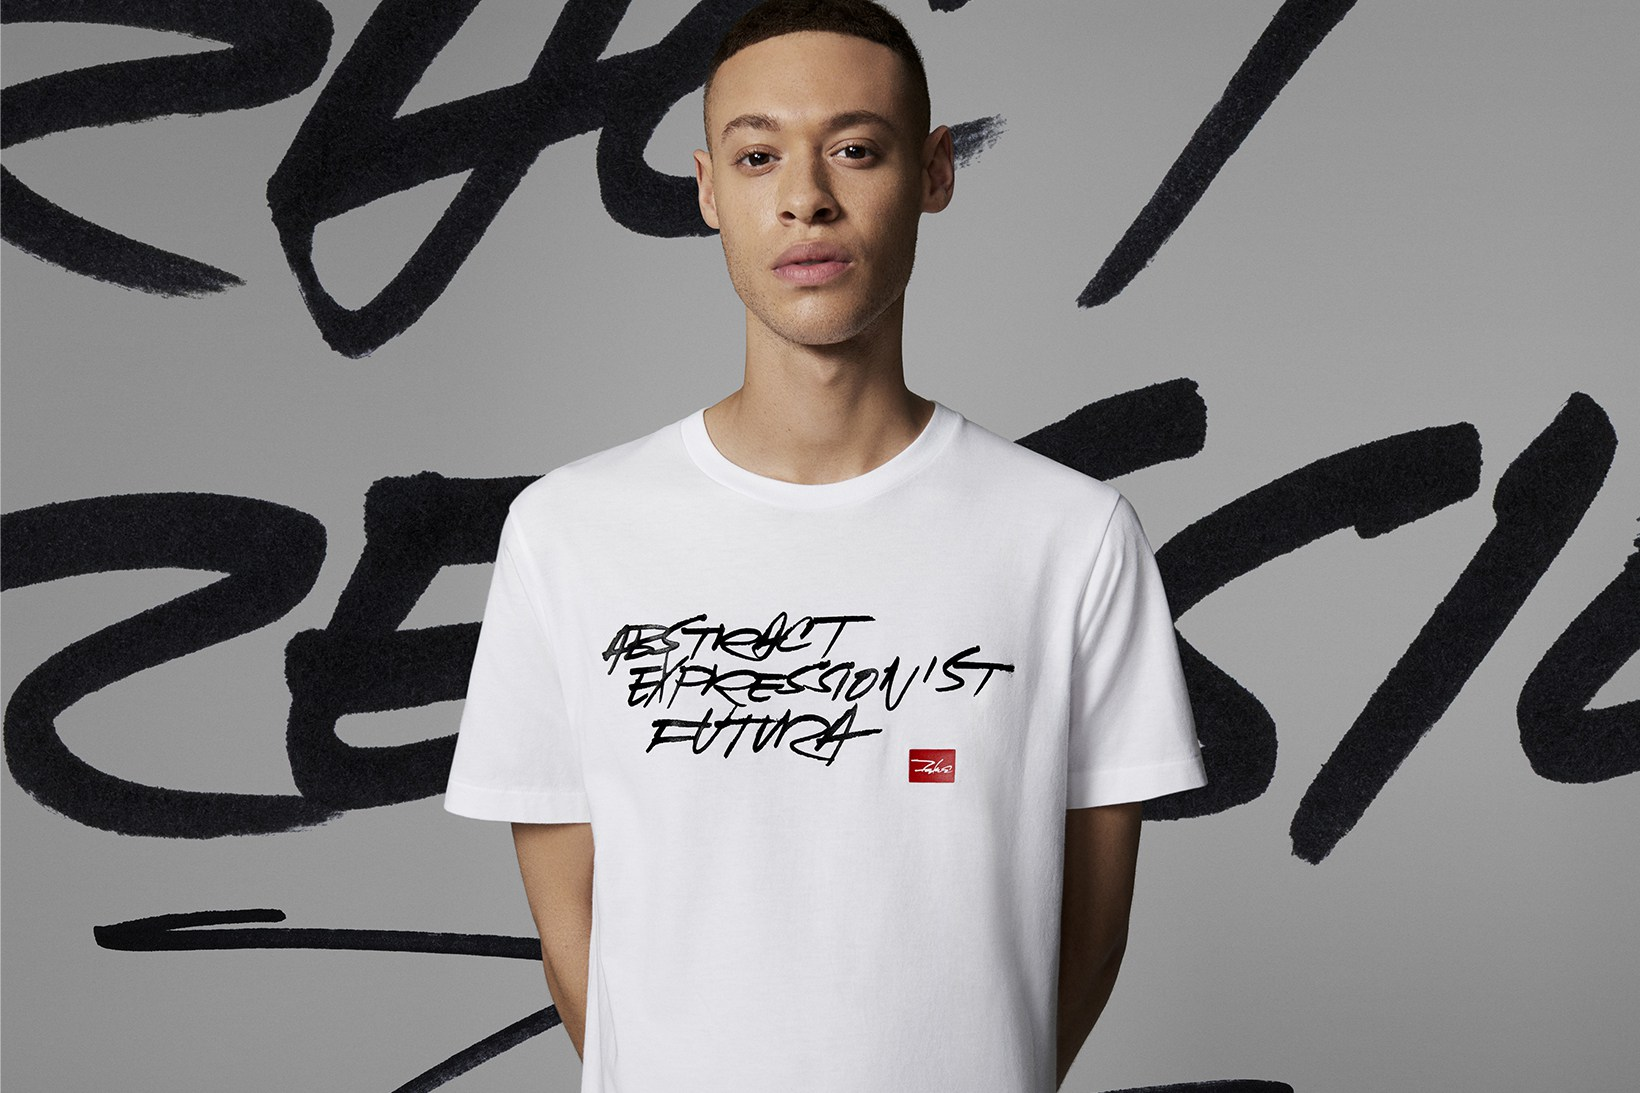 futura-uniqlo-ut-lookbook-8